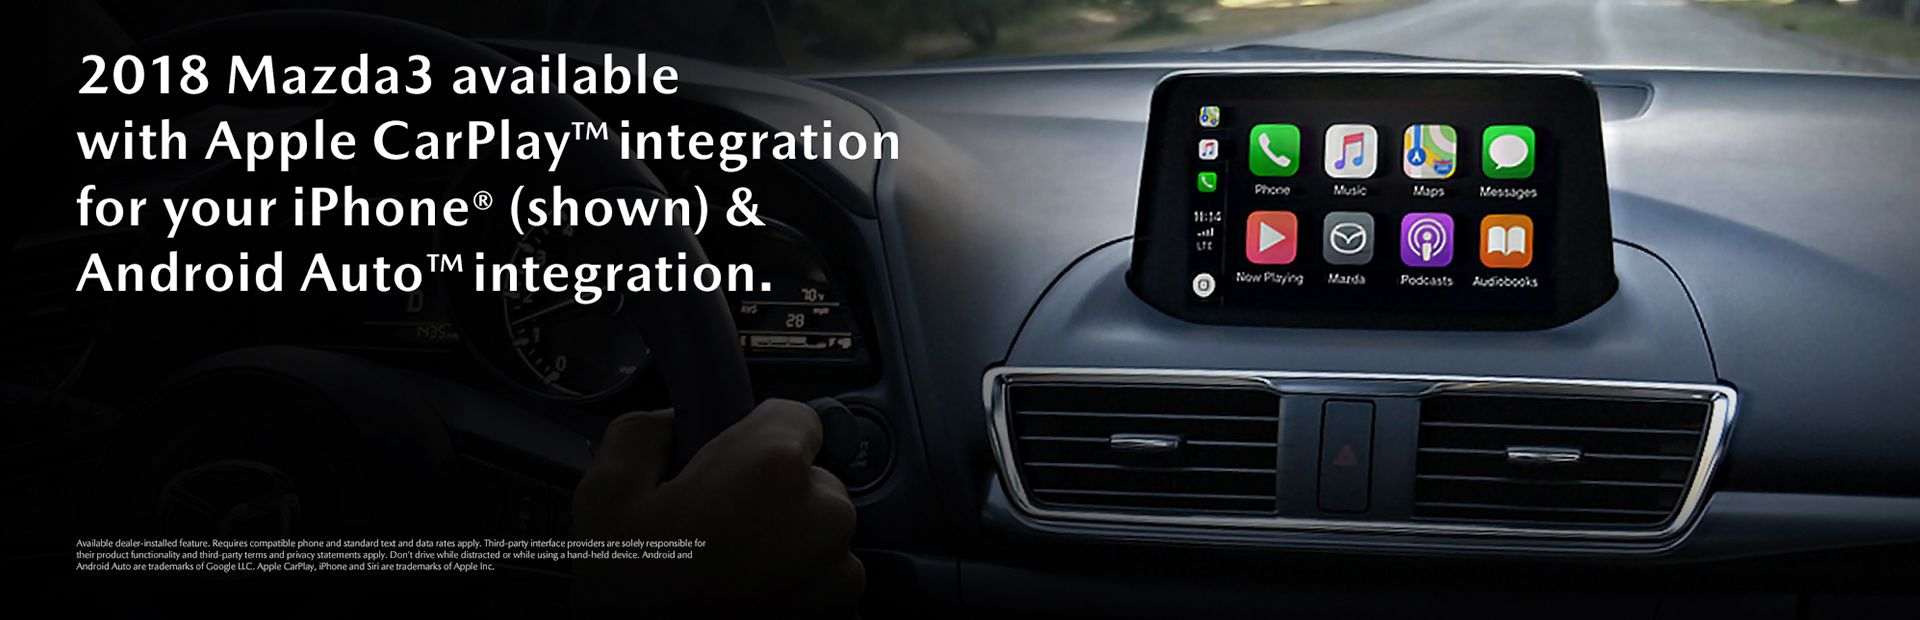 "A banner ad showing Apple CarPlay on the infotainment screen inside what is presumably a 2018 Mazda3. Text says, ""2018 Mazda3 available with Apple CarPlay™ integration for your iPhone® (shown) & Android Auto™ integration."" Smaller disclaimer text at the bottom reads, ""Available dealer-installed feature. Requires compatible phone and standard text and data rates apply. Third-party interface providers are solely responsible for their product functionality and third-party terms and privacy statements apply. Don't drive while distracted or while using a hand-held device. Android and Android Auto are trademarks of Google LLC. Apple CarPlay, iPhone and Siri are trademarks of Apple Inc."""